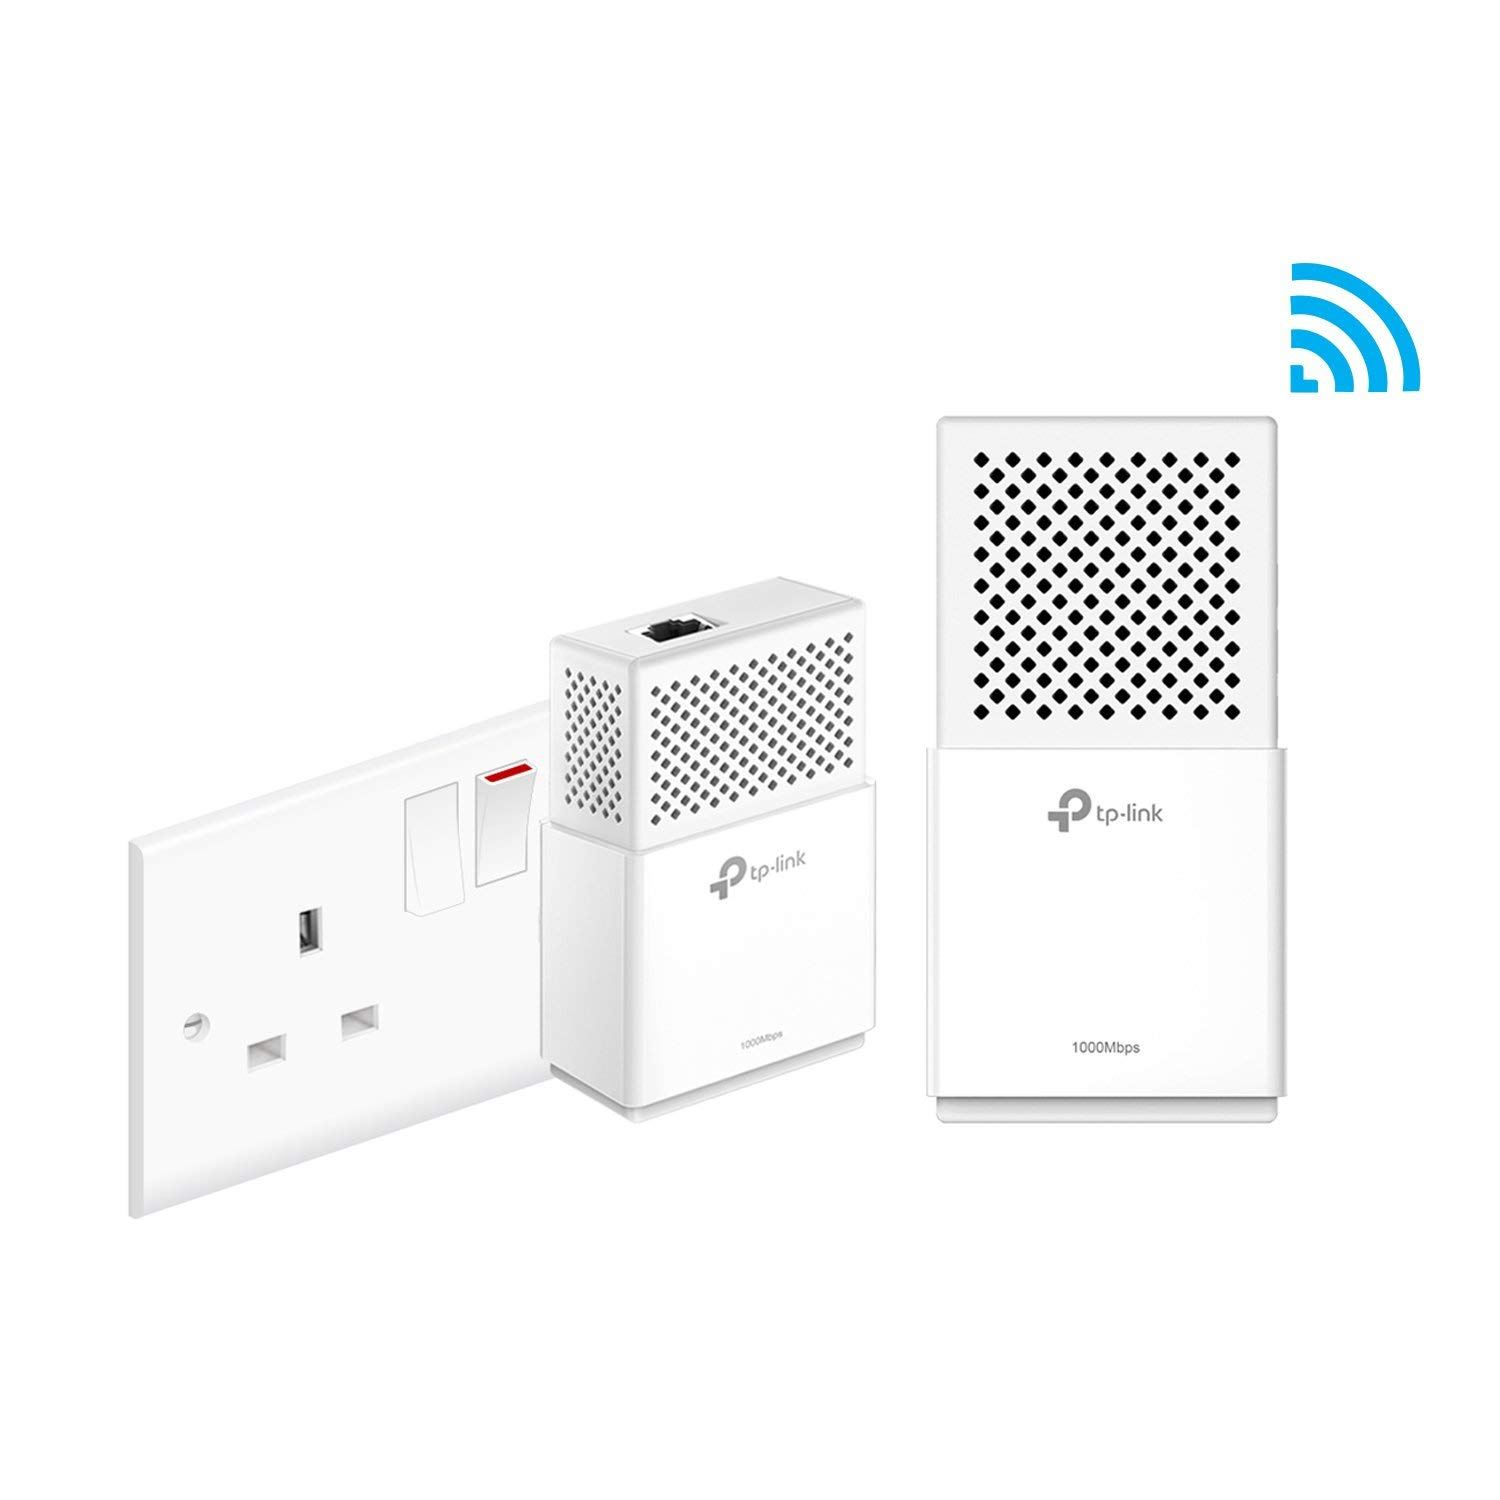 TP-Link TL-WPA7510 KIT AV1000 Gigabit Powerline AC750 Wi-Fi Booster Extender UK Manufacturer Refurbished